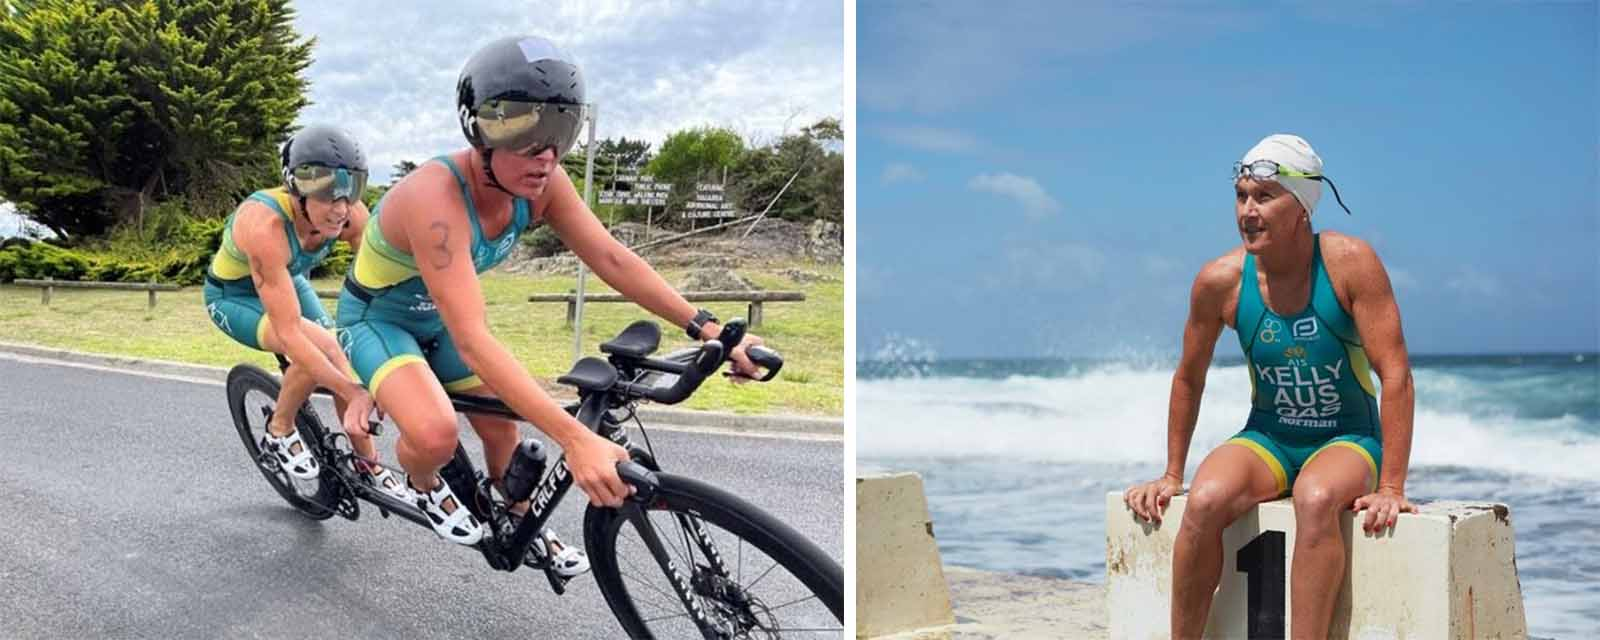 Pictures of Katie Kelly bike riding with guide and ready to swim.